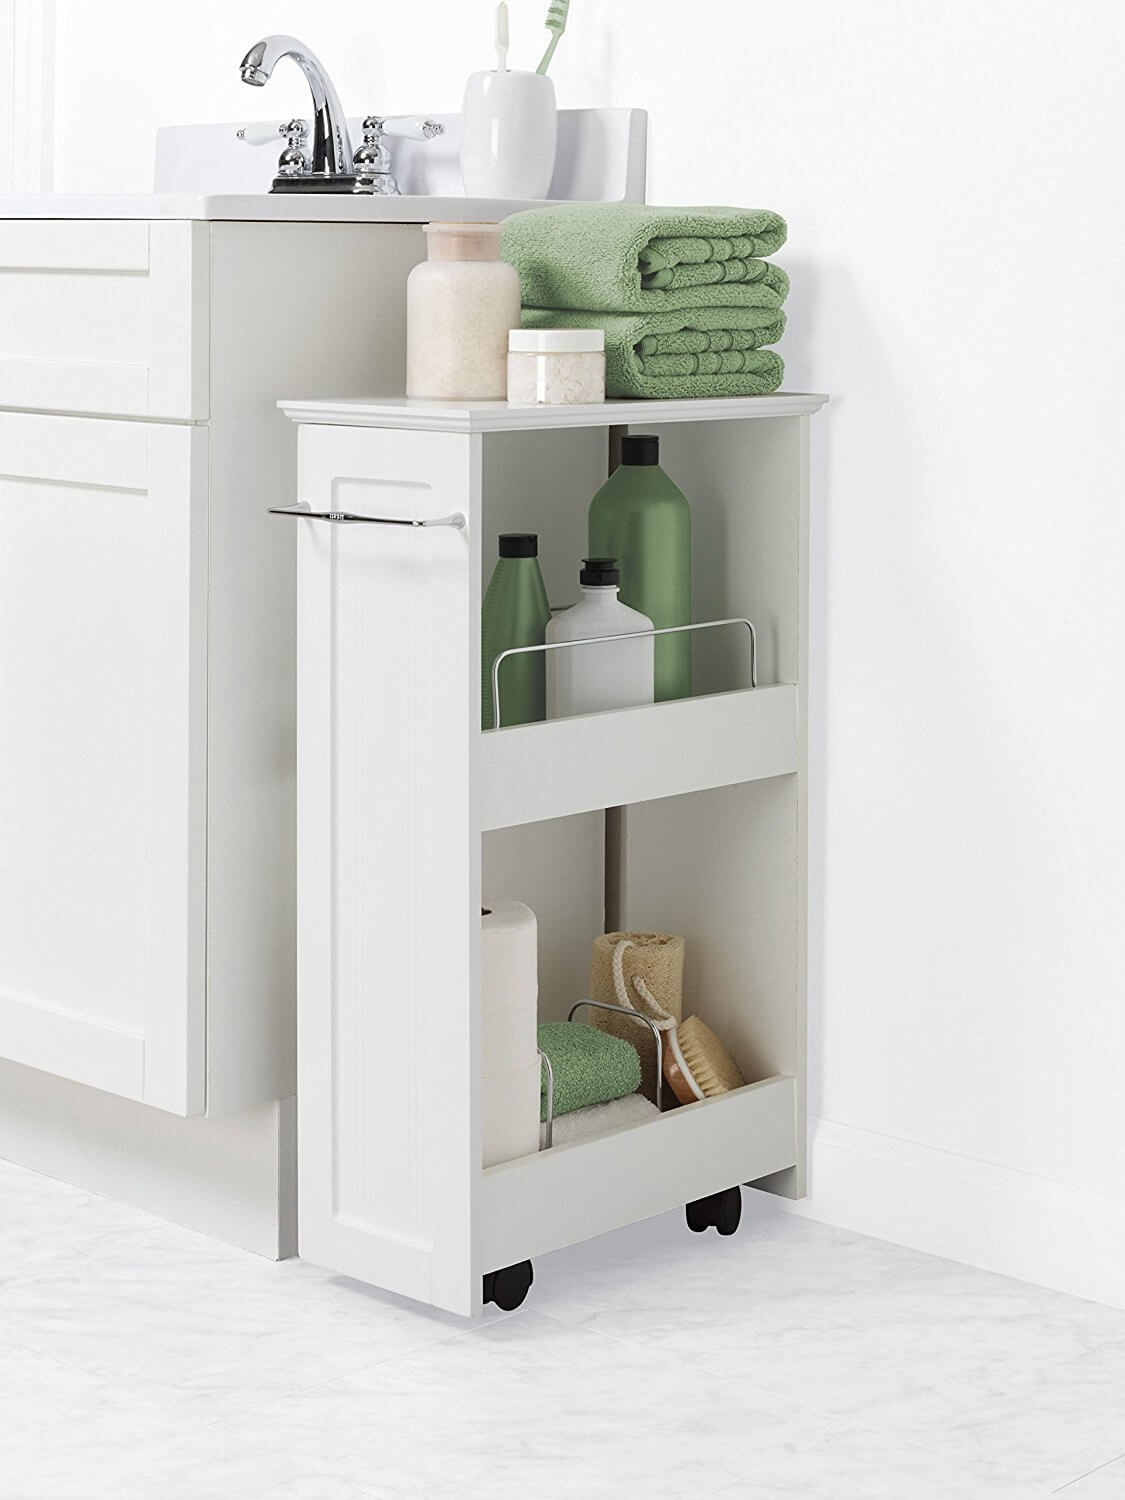 Small Cabinet Storage Shelves